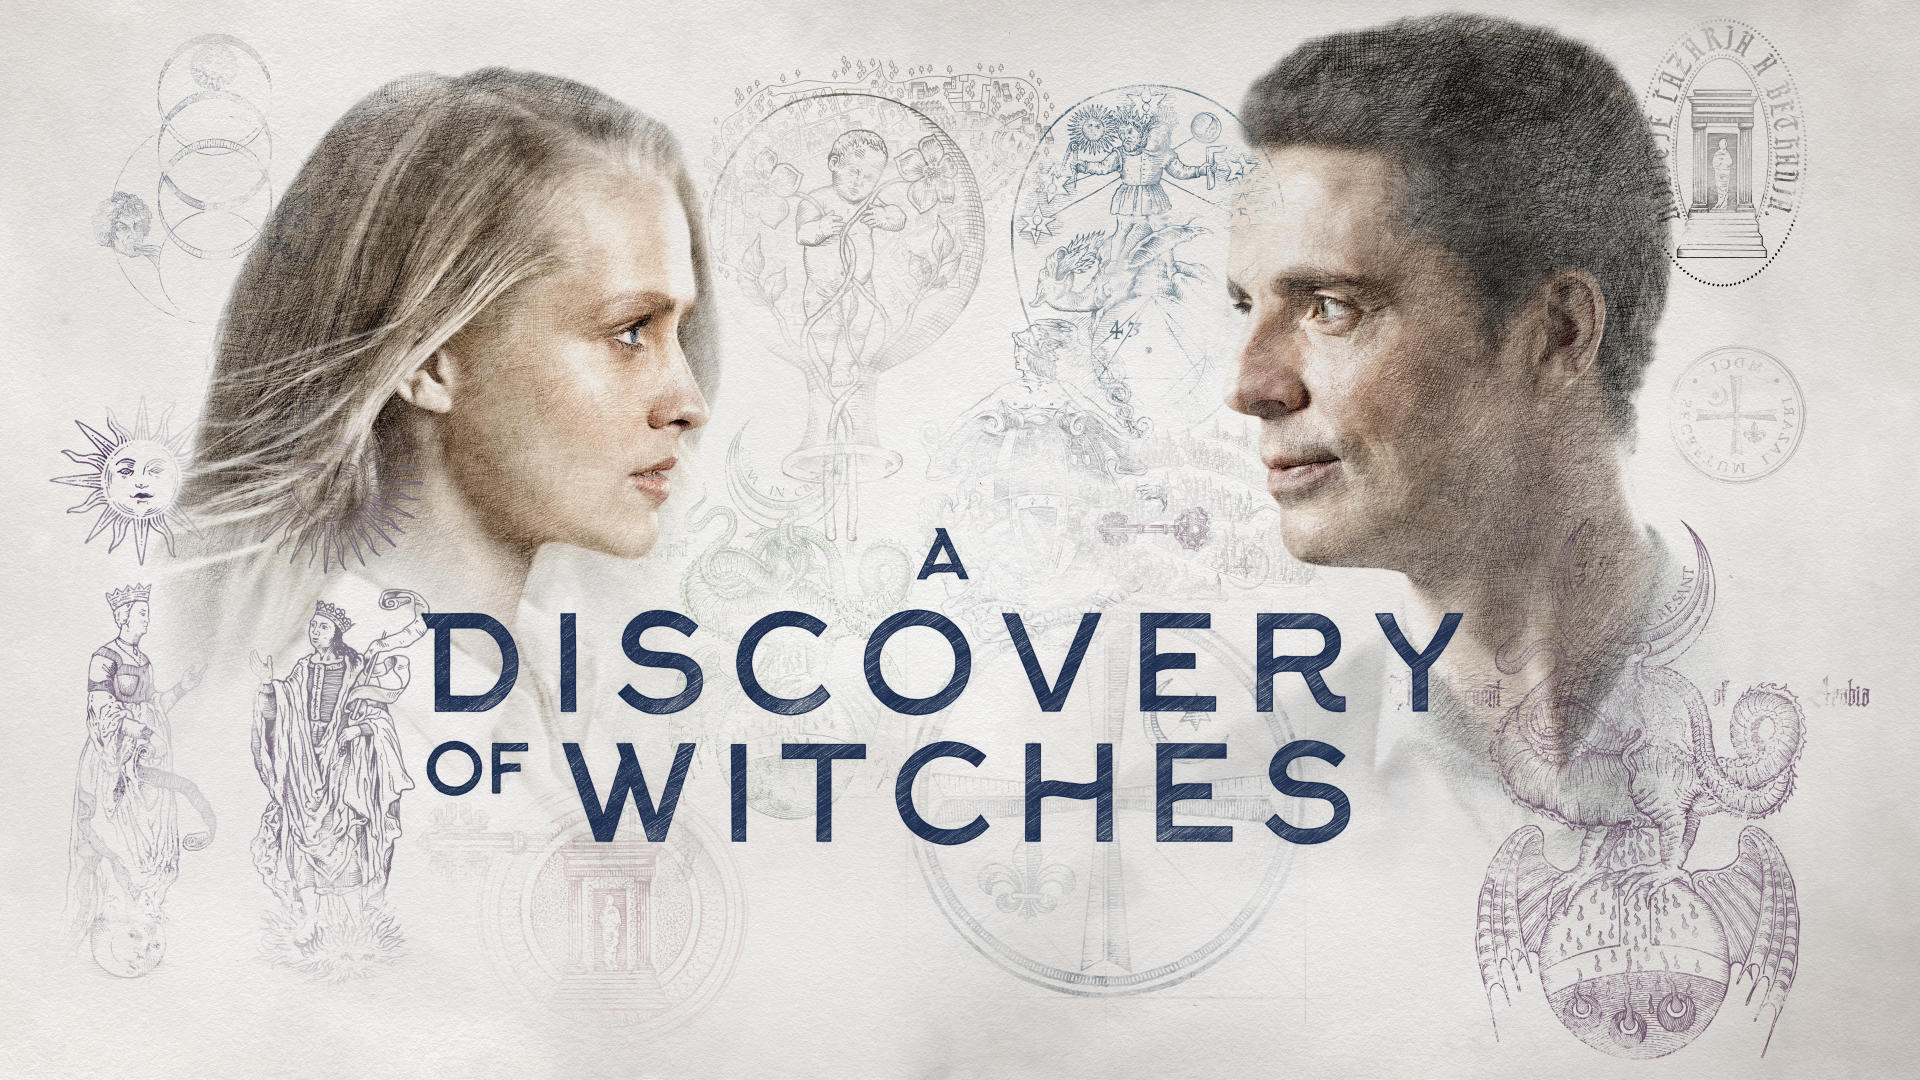 A Discovery of Witches: Mythology | Sky.com